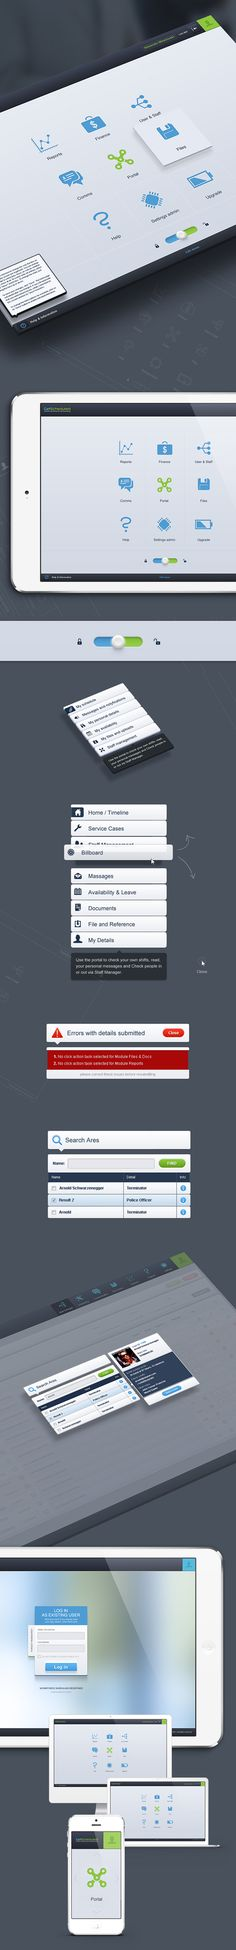 52 Innovative UI Design Concepts to Boost User Experience UI Design Concepts to Boost User Experience: Online Workforce Scheduling App UI by Mariusz Onichowski Mobile Application Design, Mobile Ui Design, Gui Interface, User Interface Design, Graphisches Design, Design Concepts, Graphic Design, Ui Kit, Apps